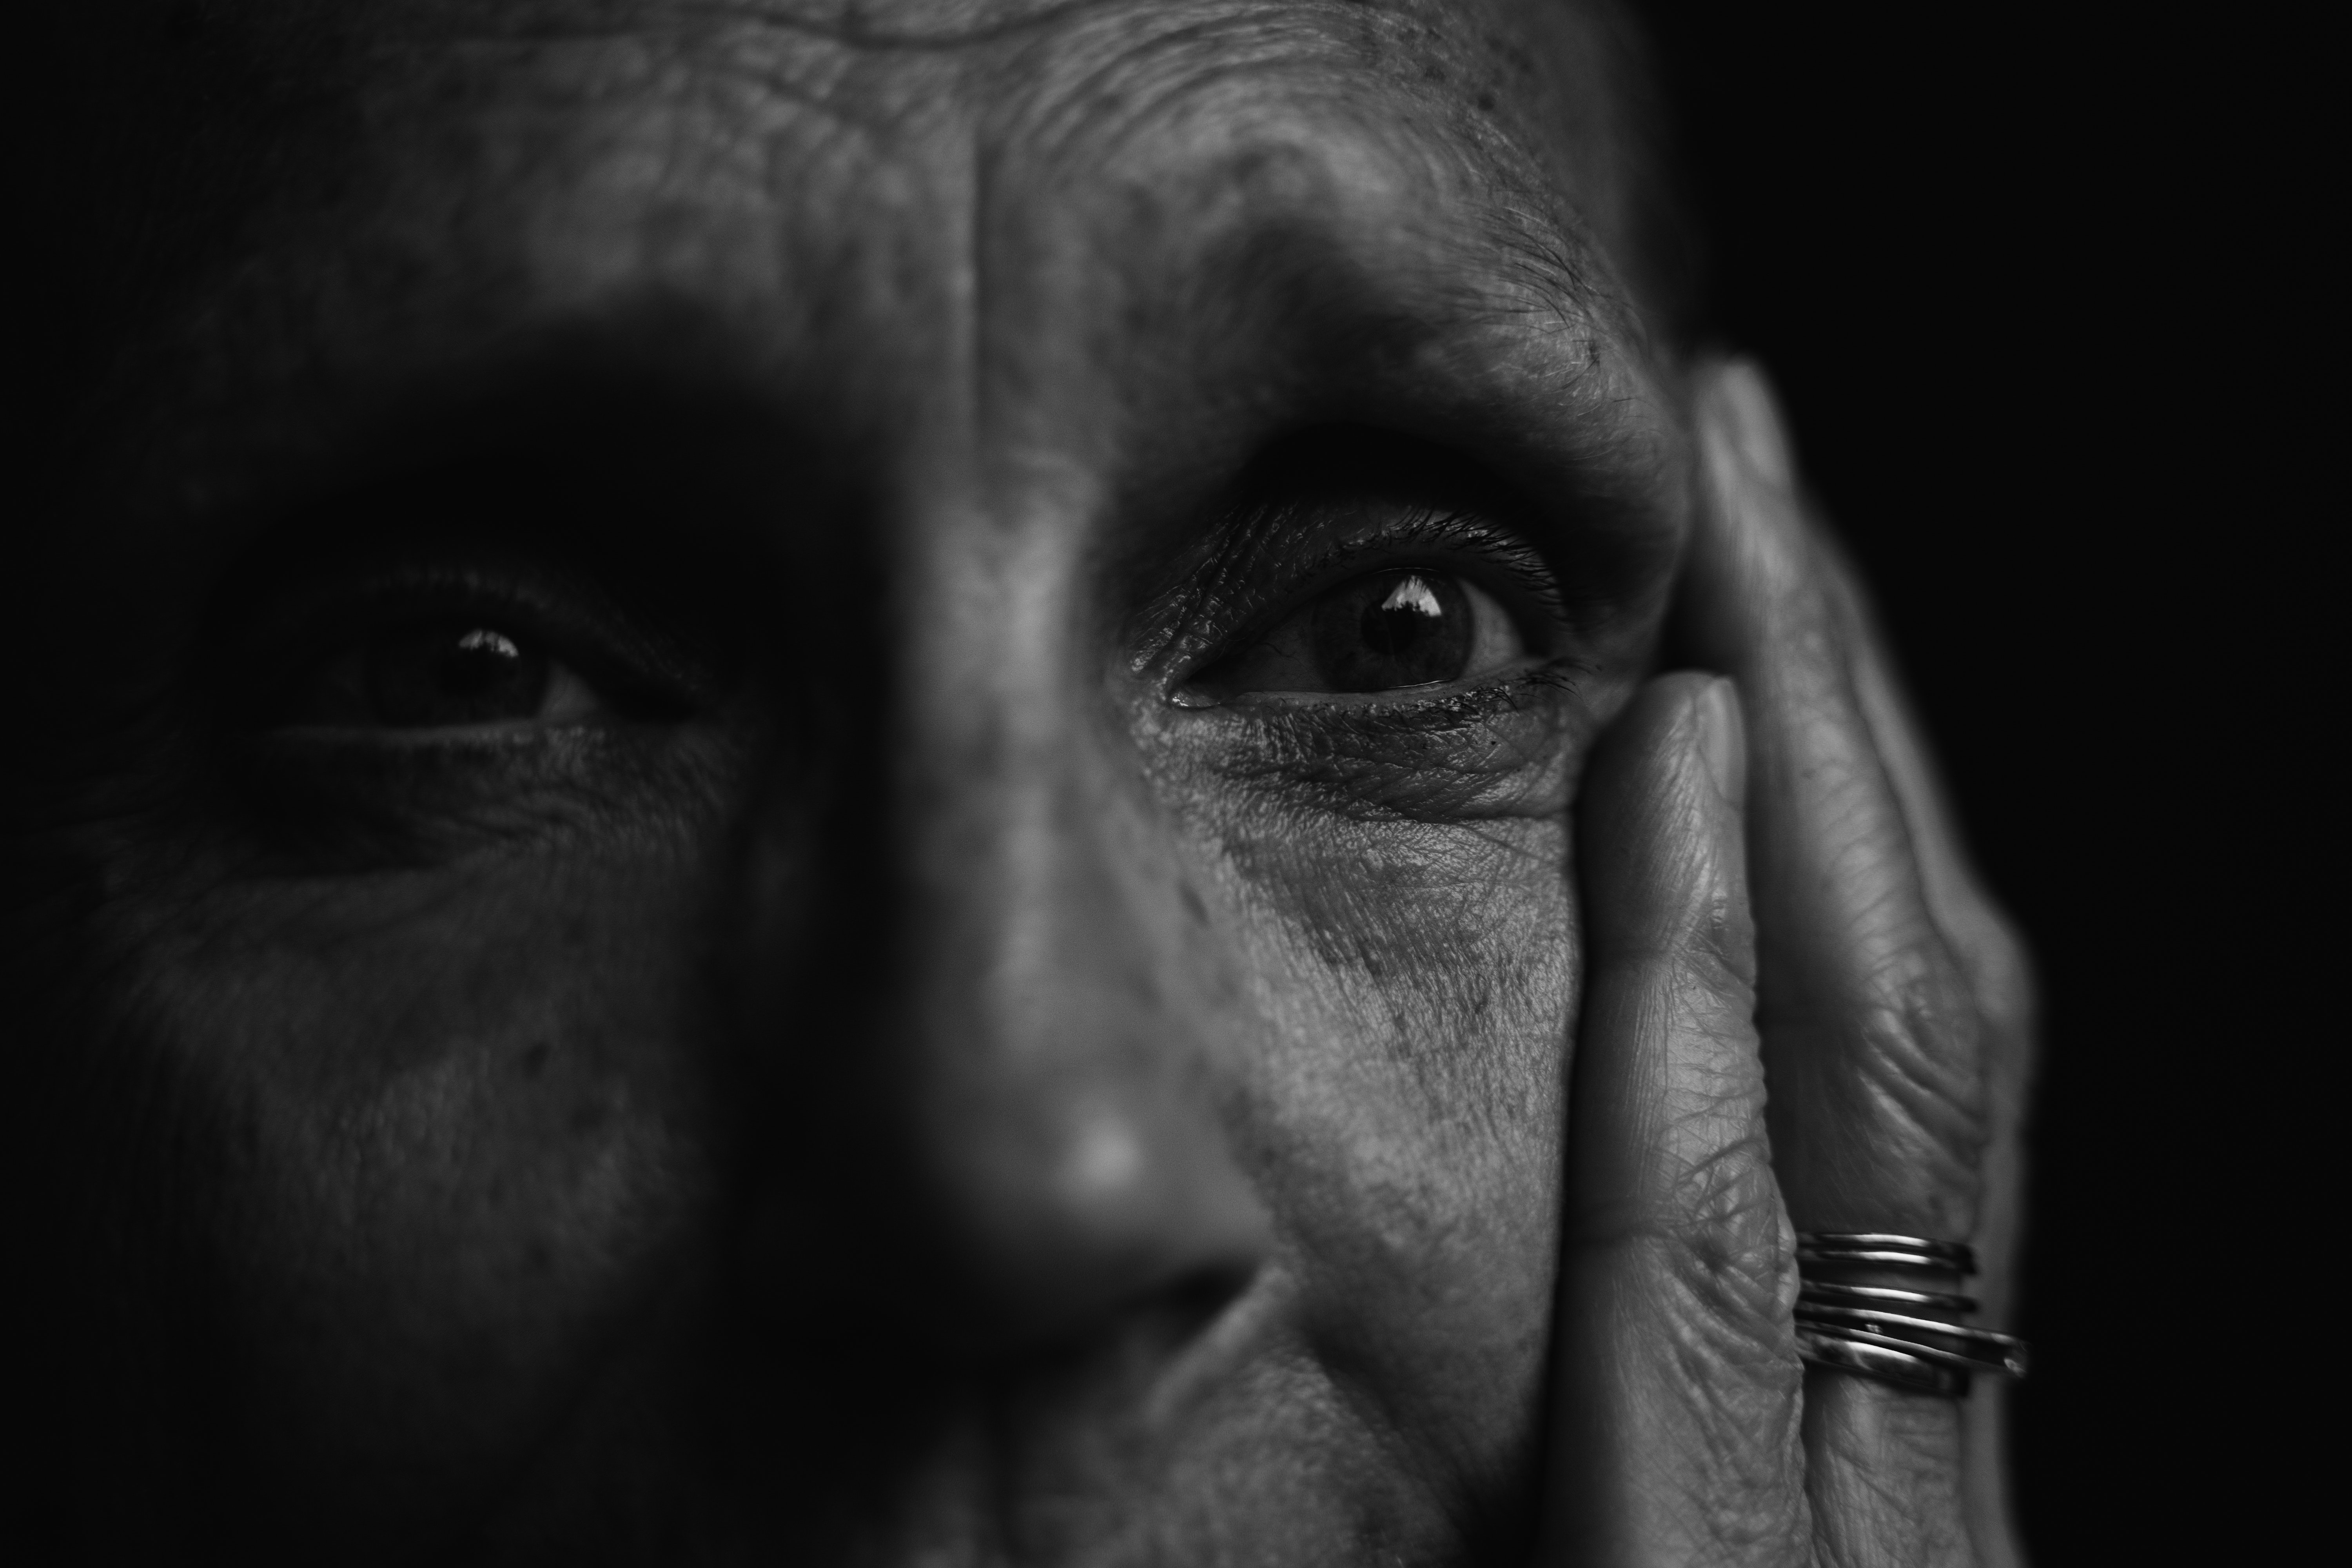 monochrome-photo-of-old-person-by Matej